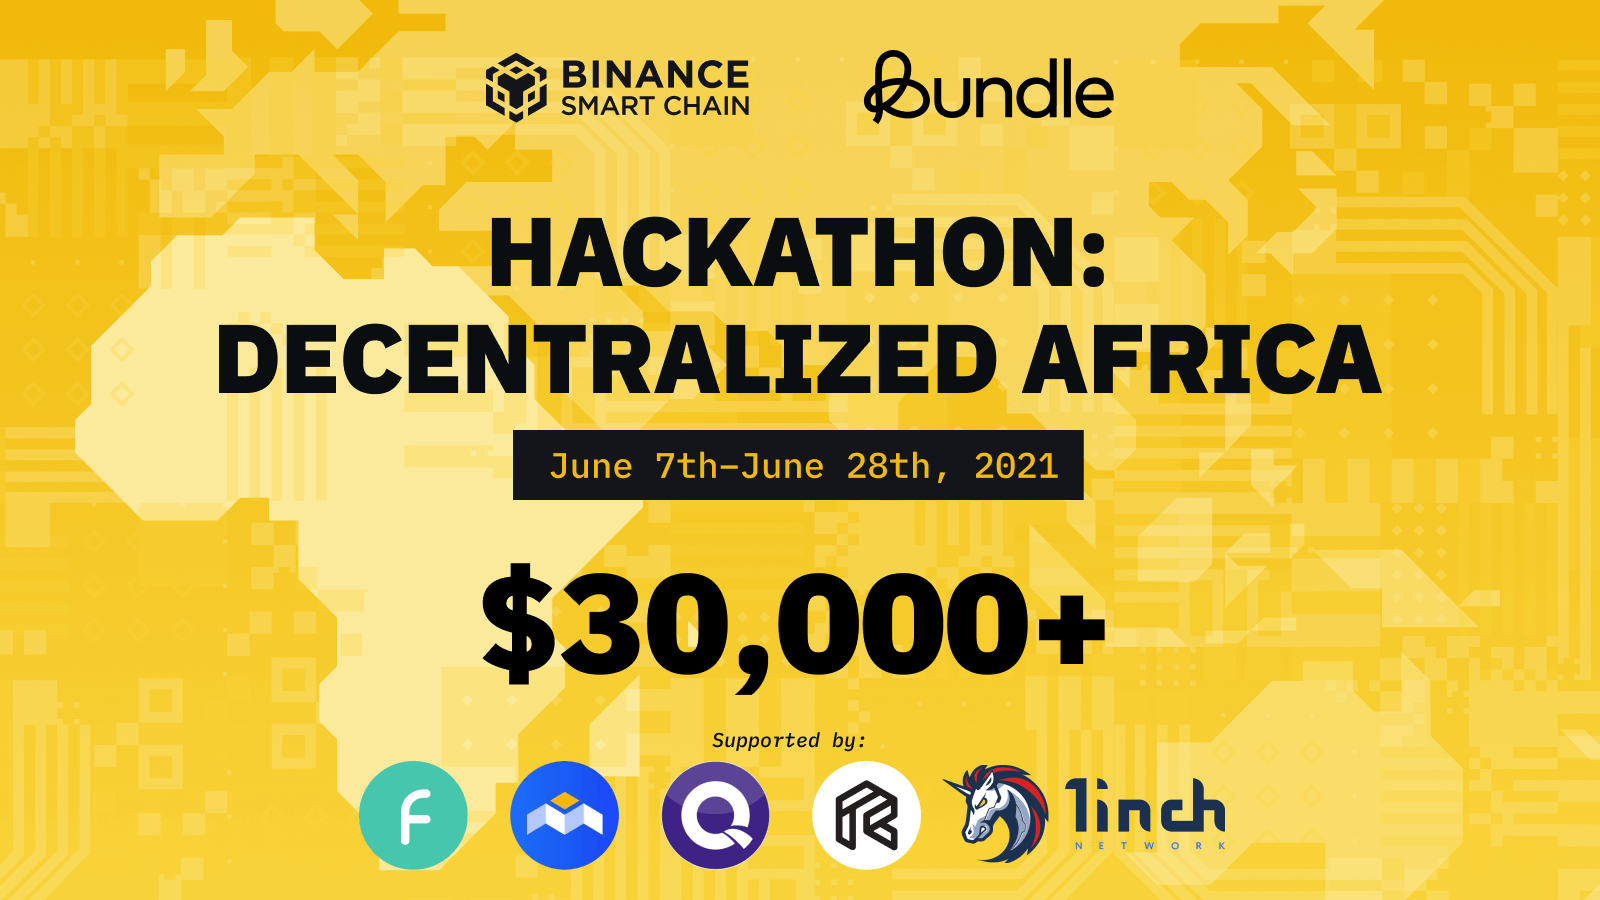 Binance Hackathon participants stand to win up to USD 30,000